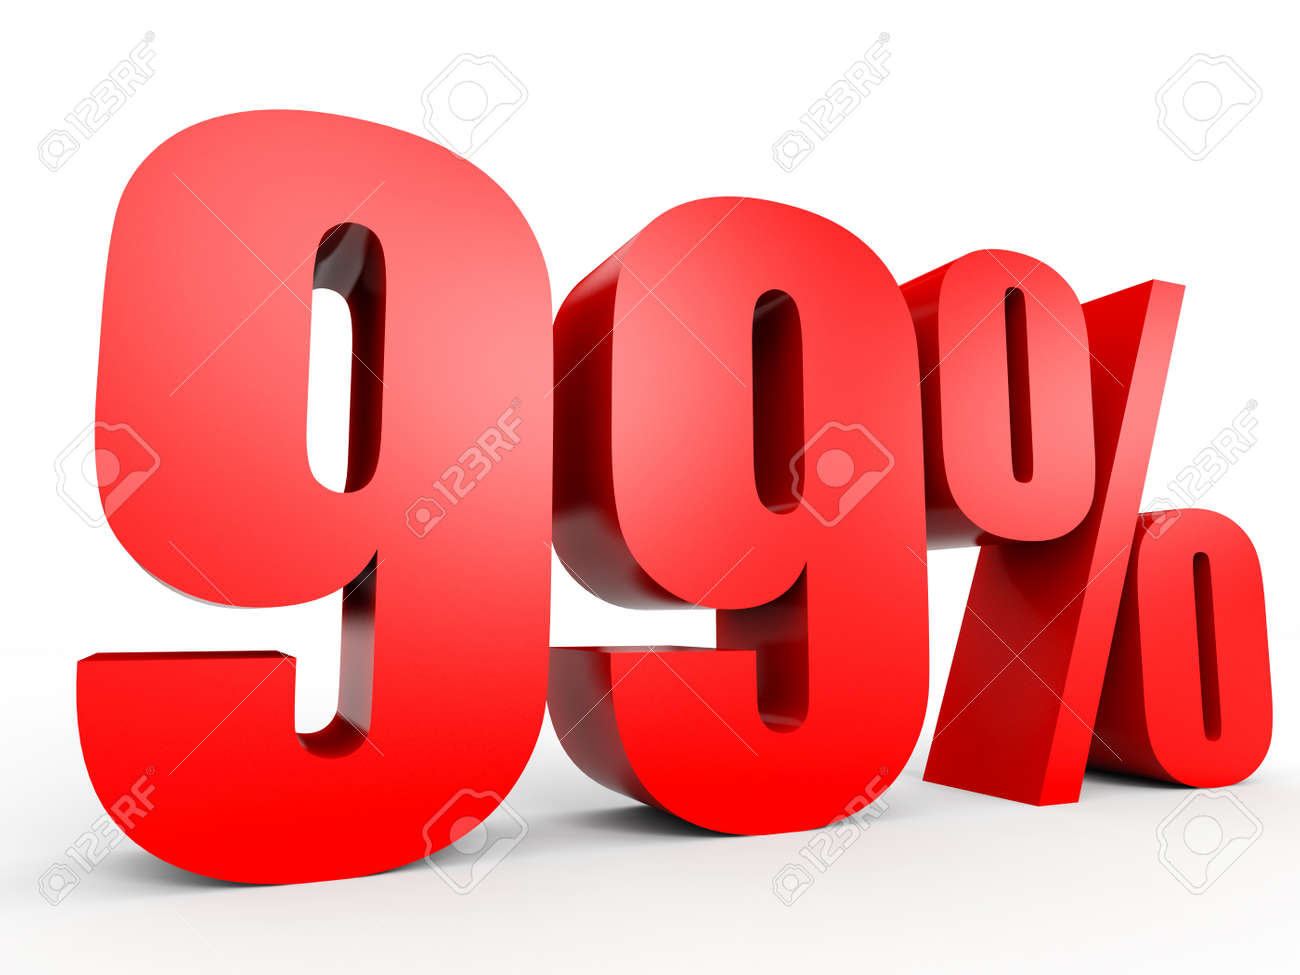 Discount 99 percent off. 3D illustration on white background. - 54873537